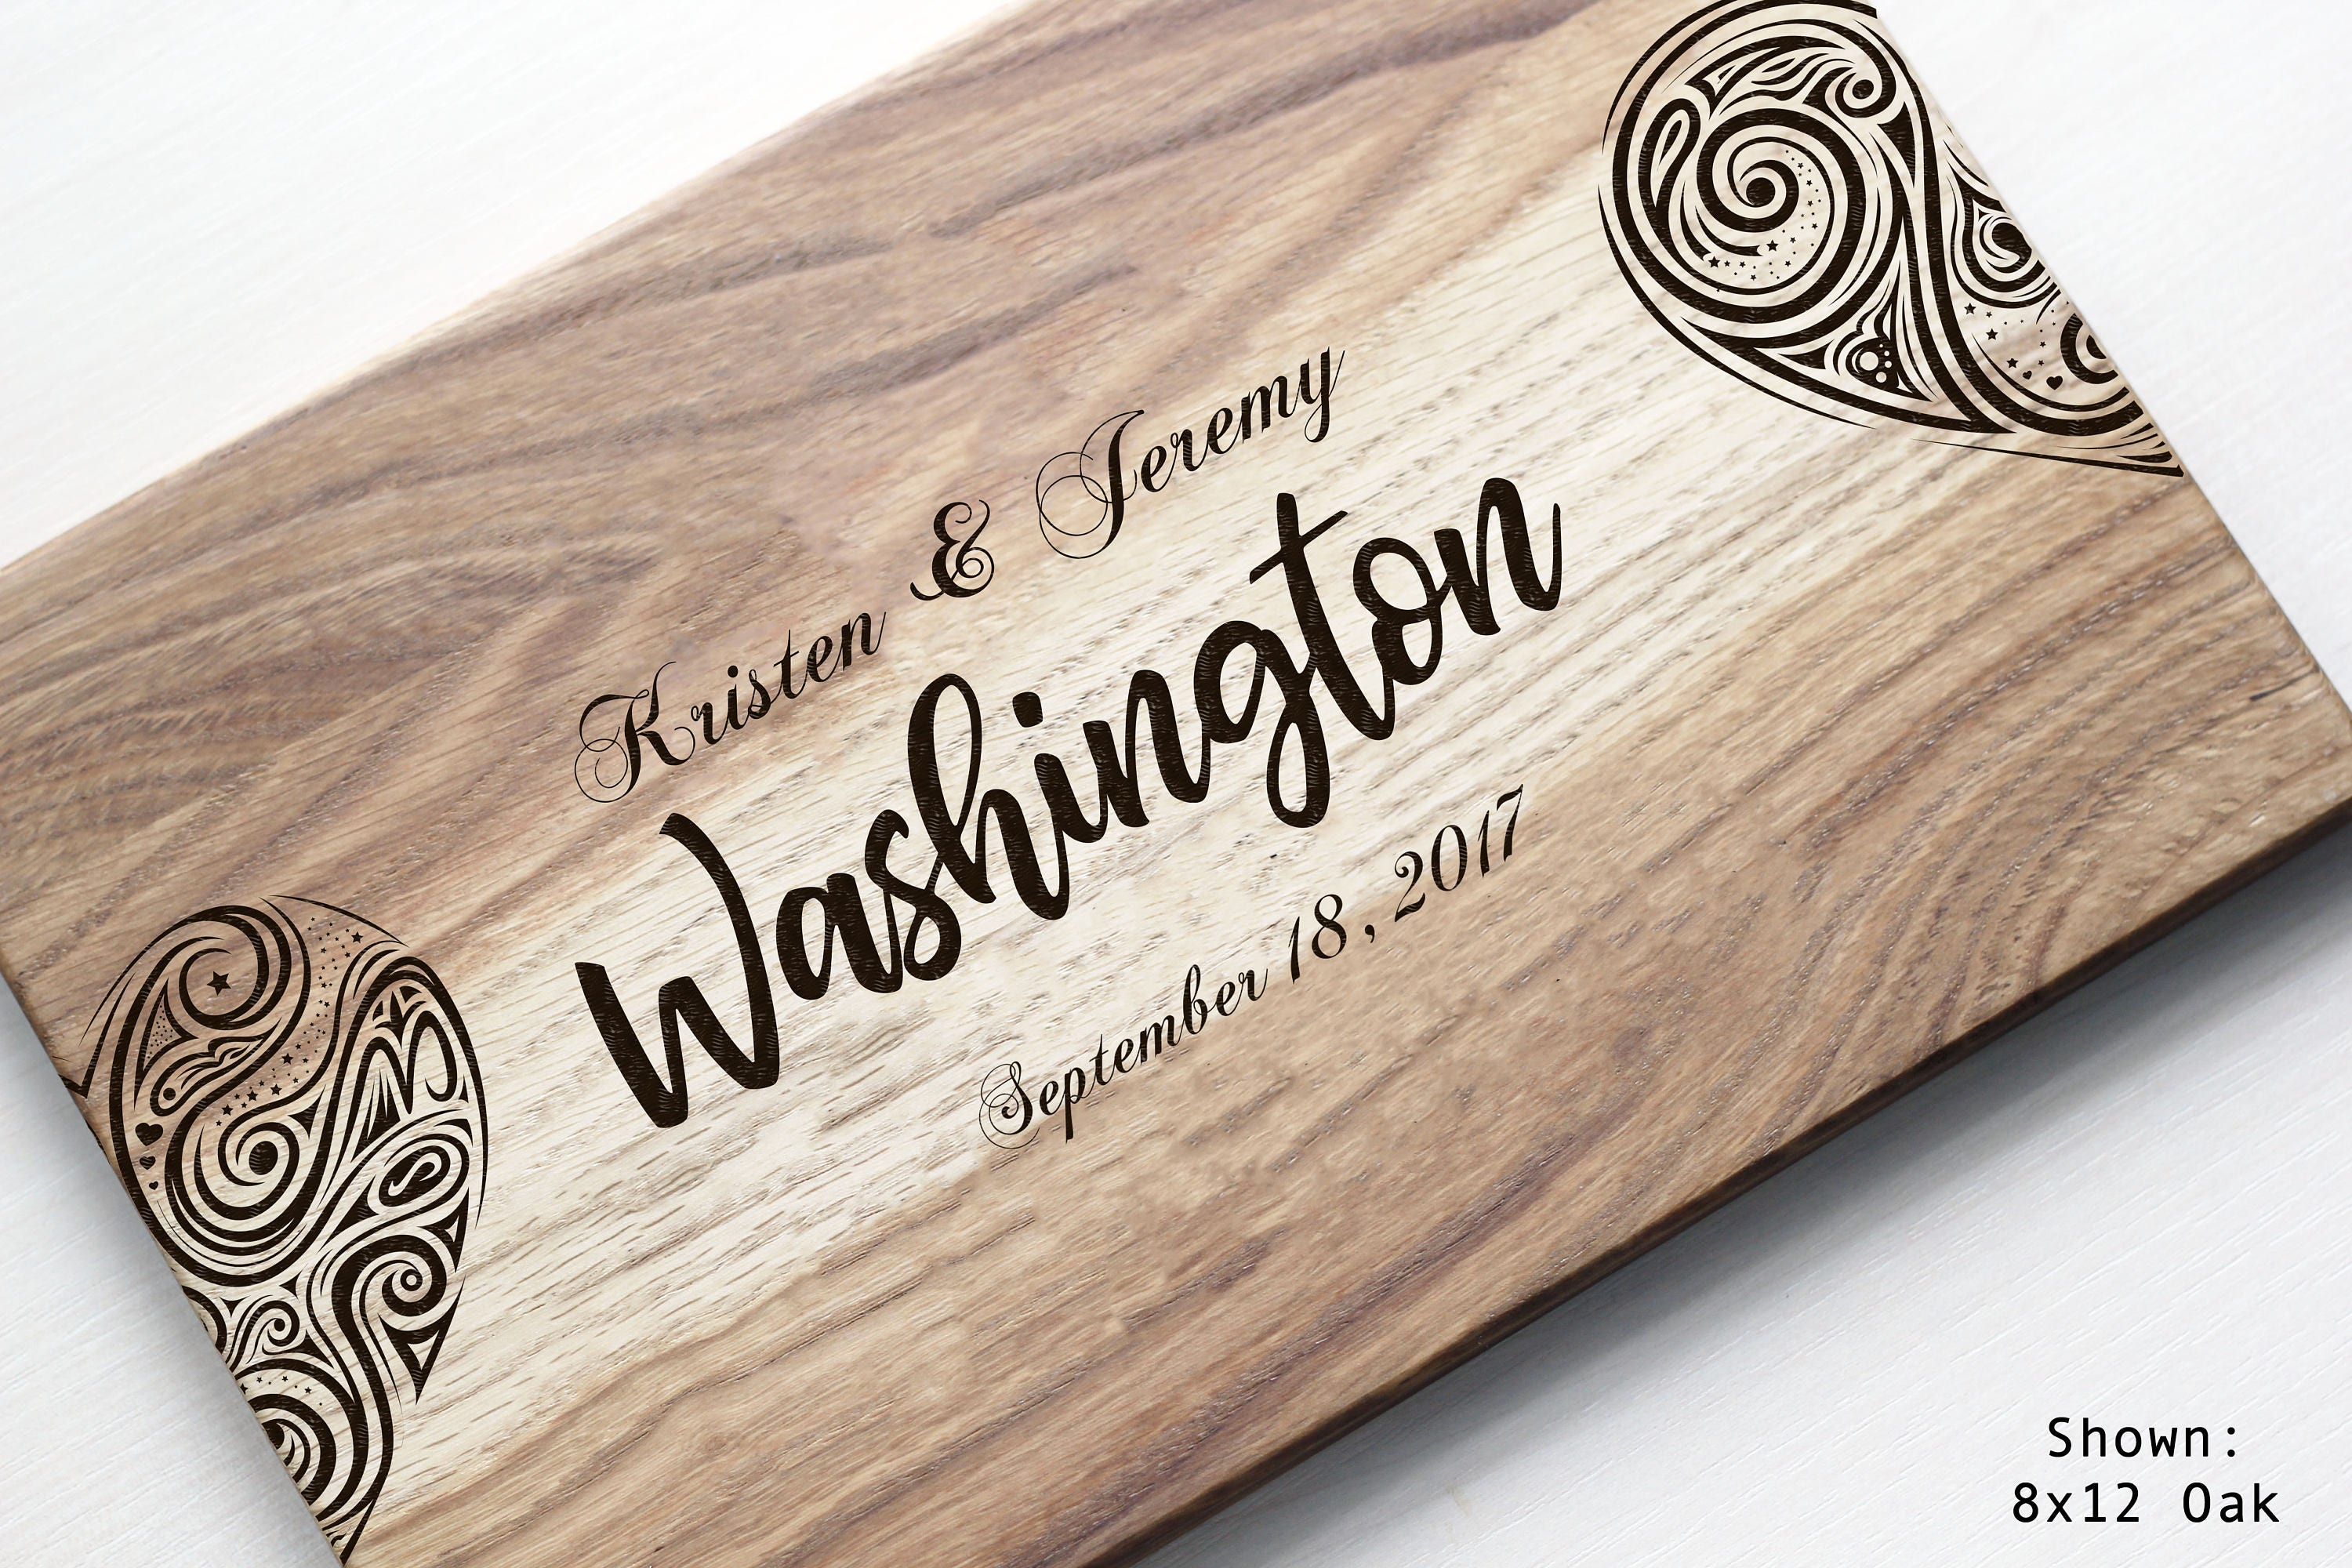 Monogram Wedding Gift Ideas: Personalized Cutting Board Custom Wedding Gift Ideas